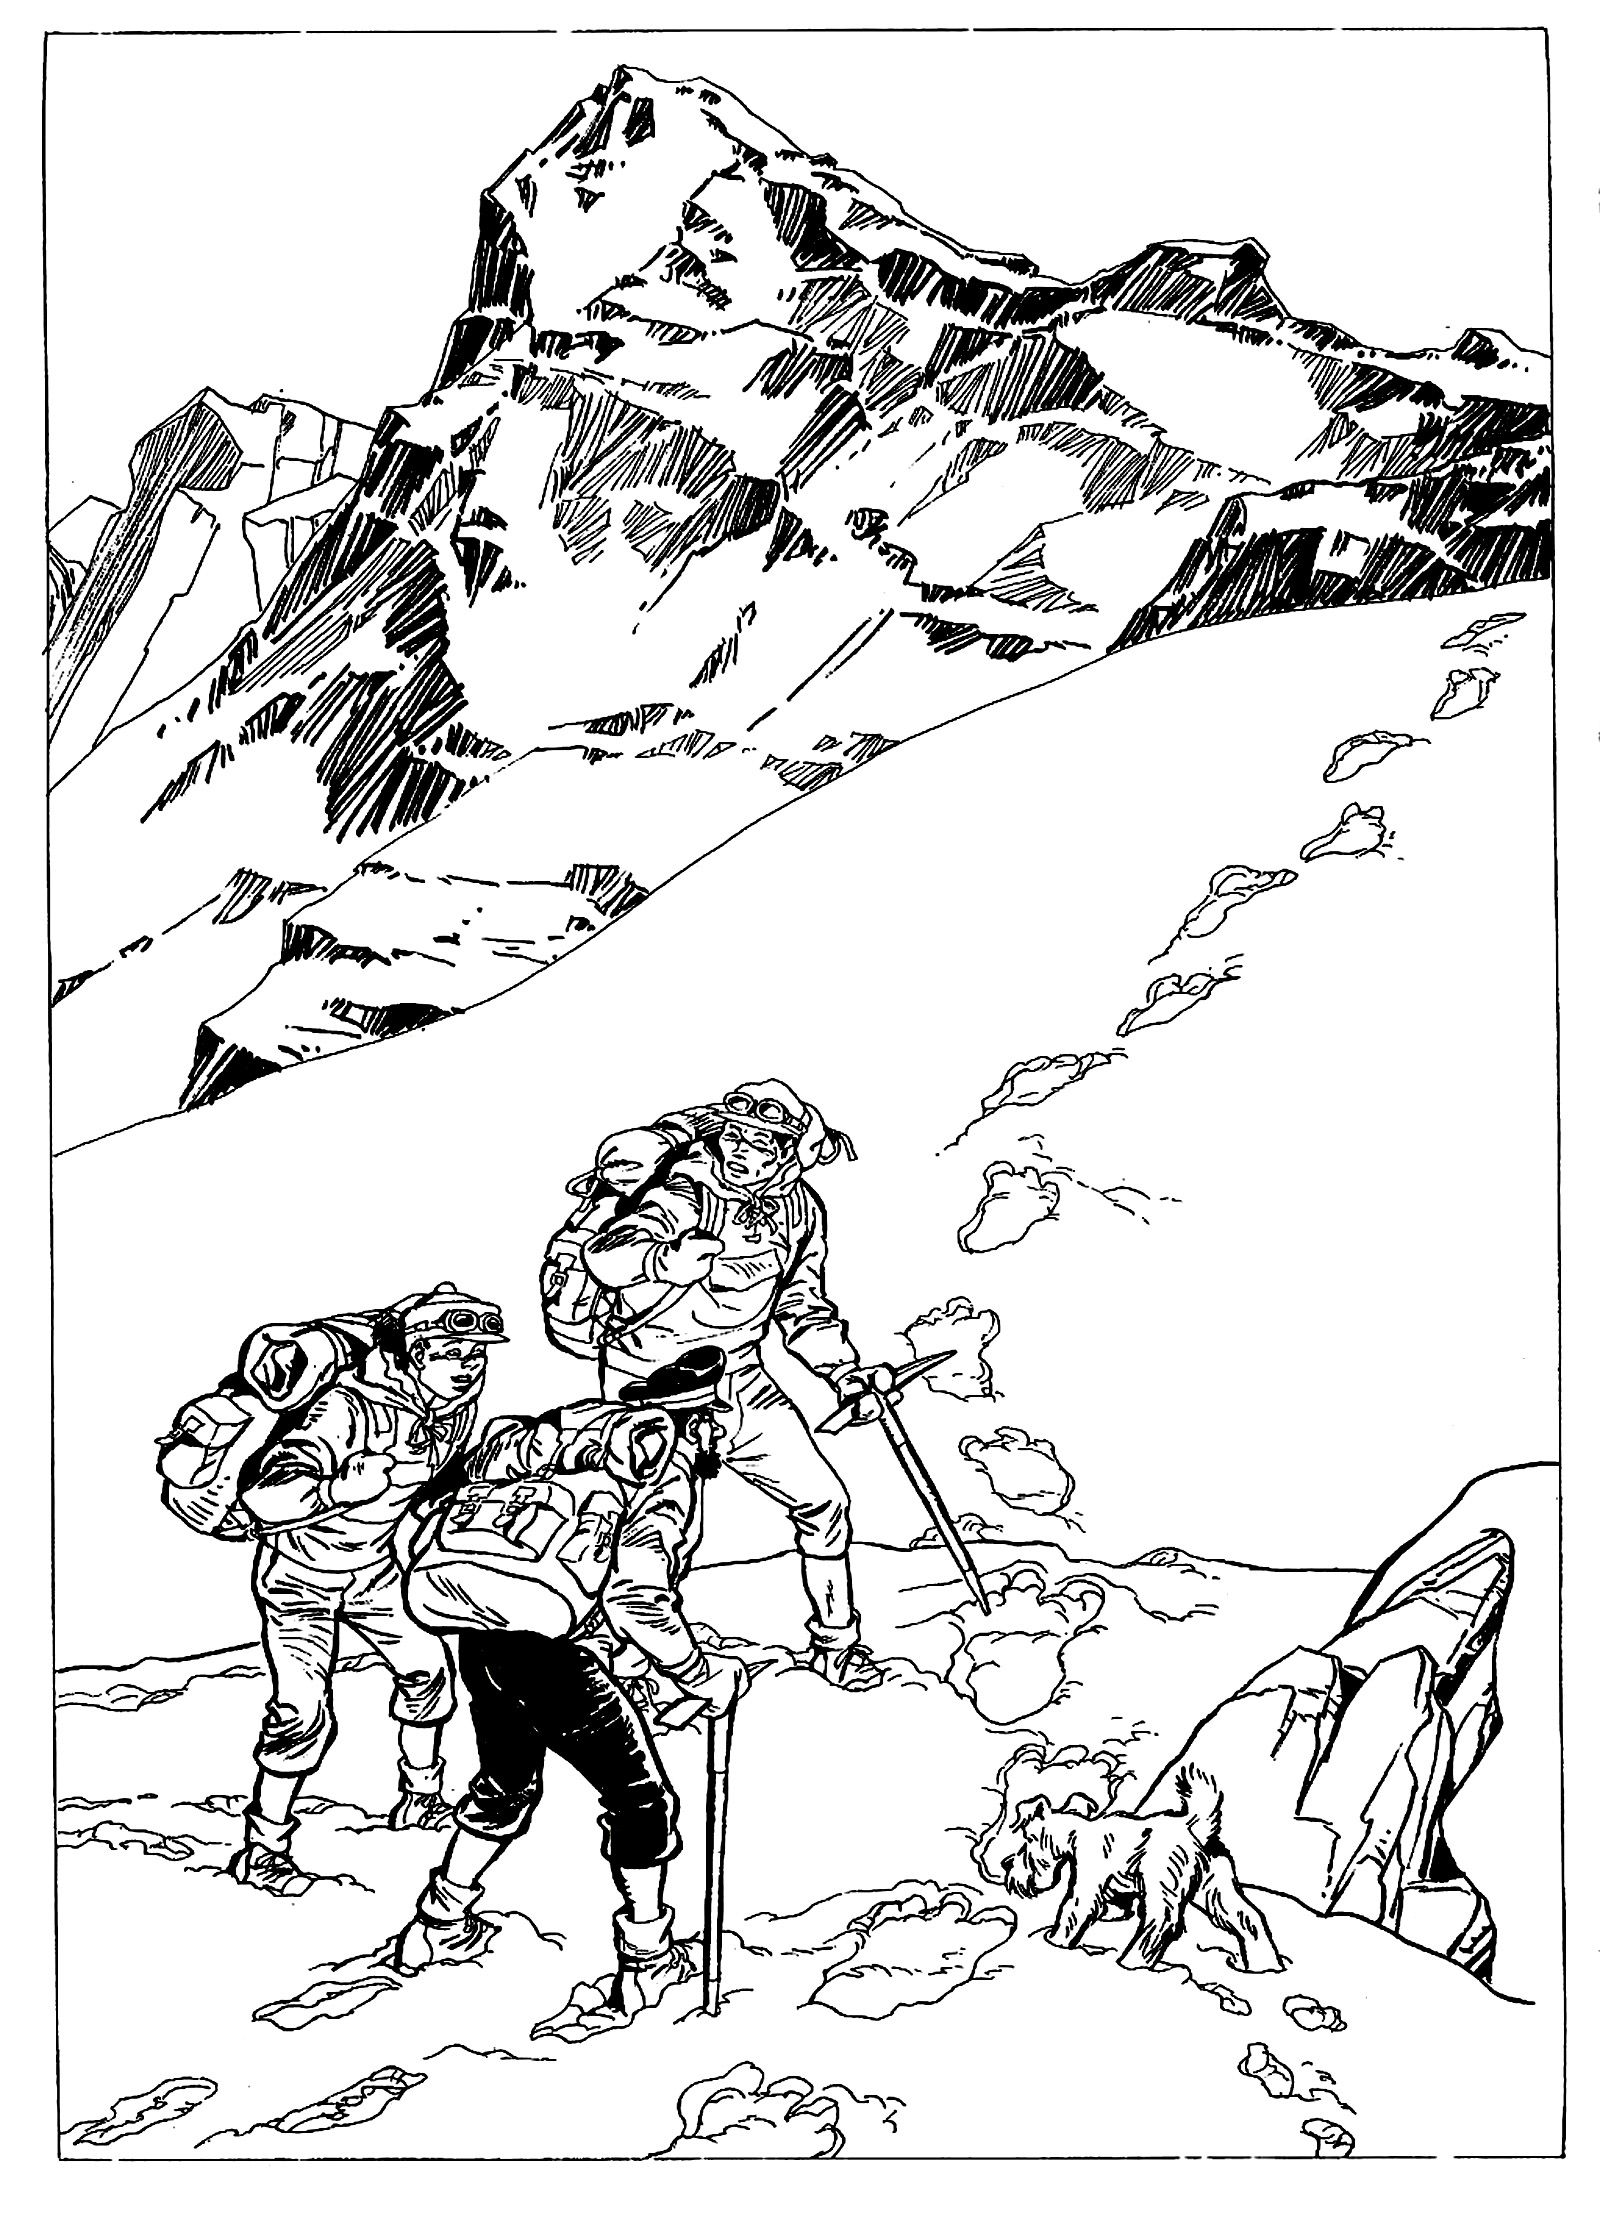 free coloring page coloring drawing inspired by de tintin in tibet Tibet Town free coloring page coloring drawing inspired by de tintin in tibet by derib drawing by derib inspired by tintin in tibet